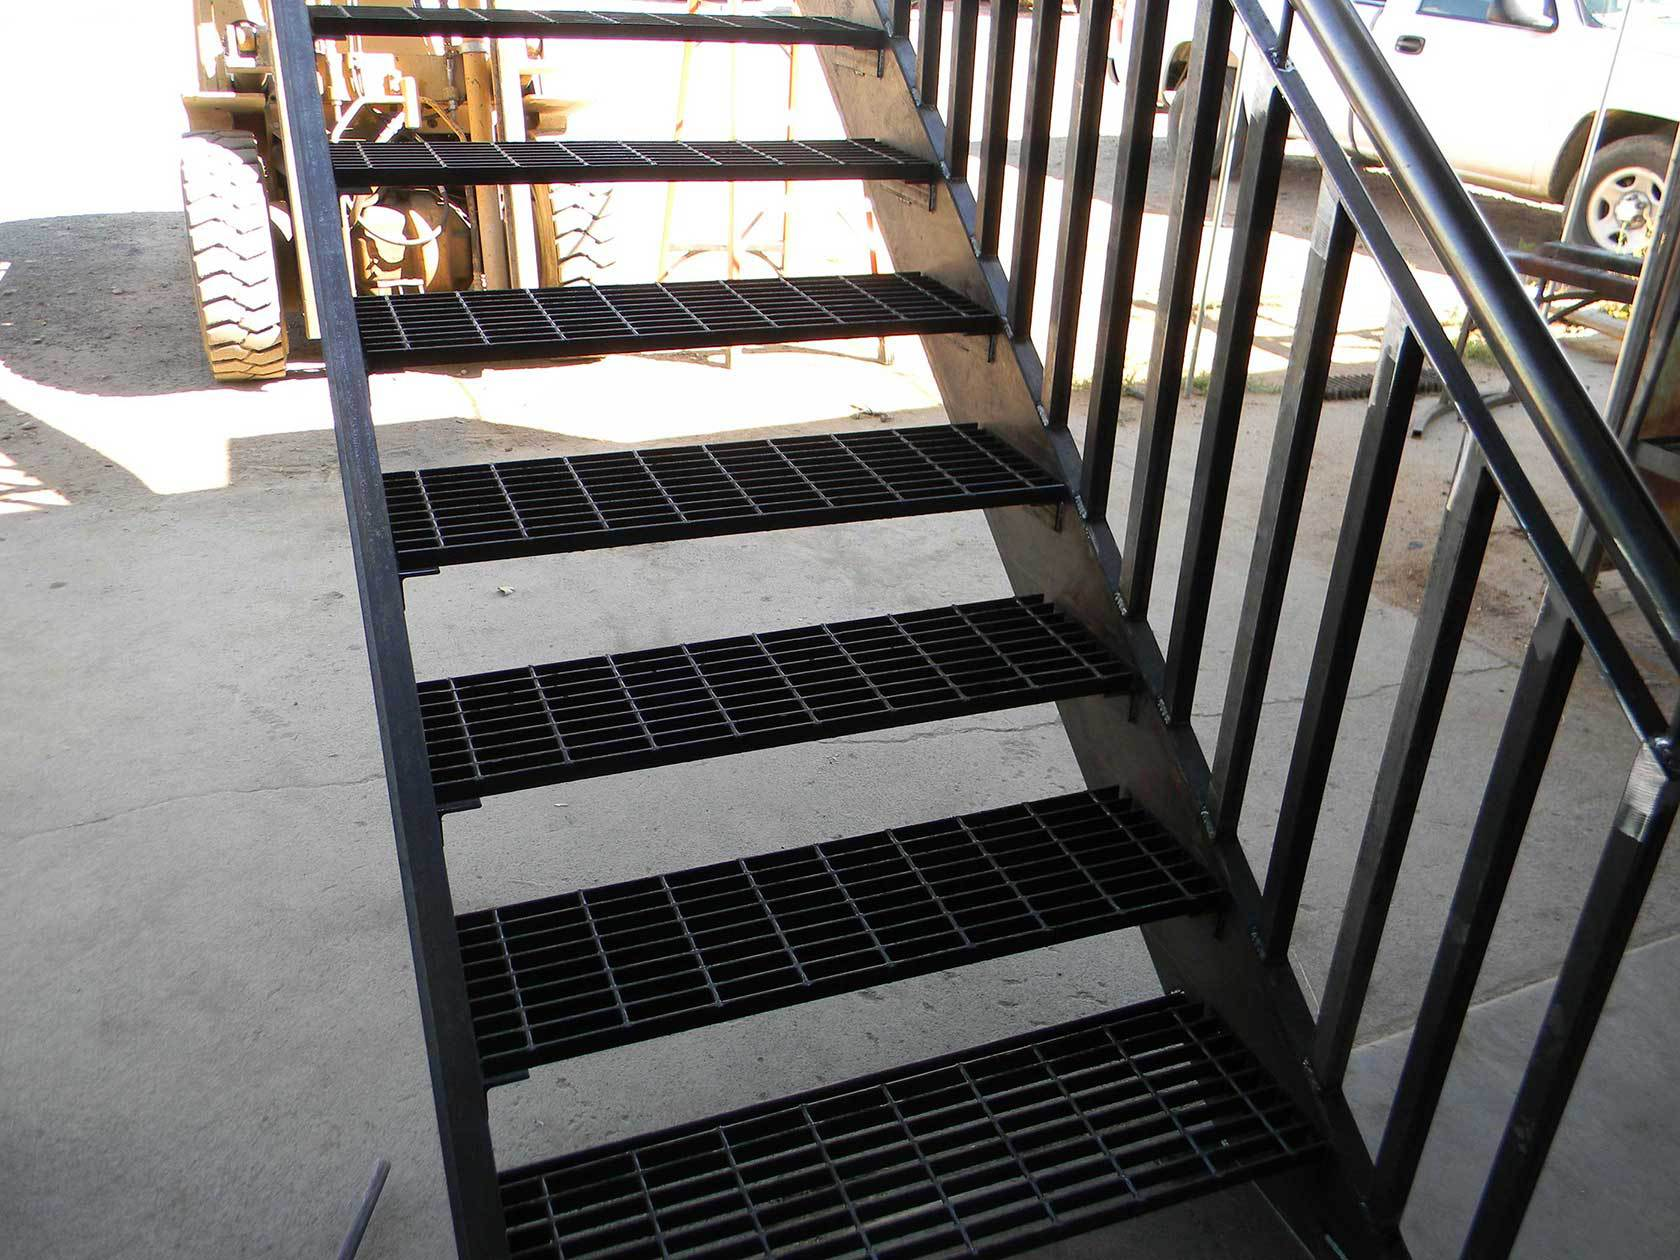 Staircases by PTR Welding & Fabrication, Denver, Colorado